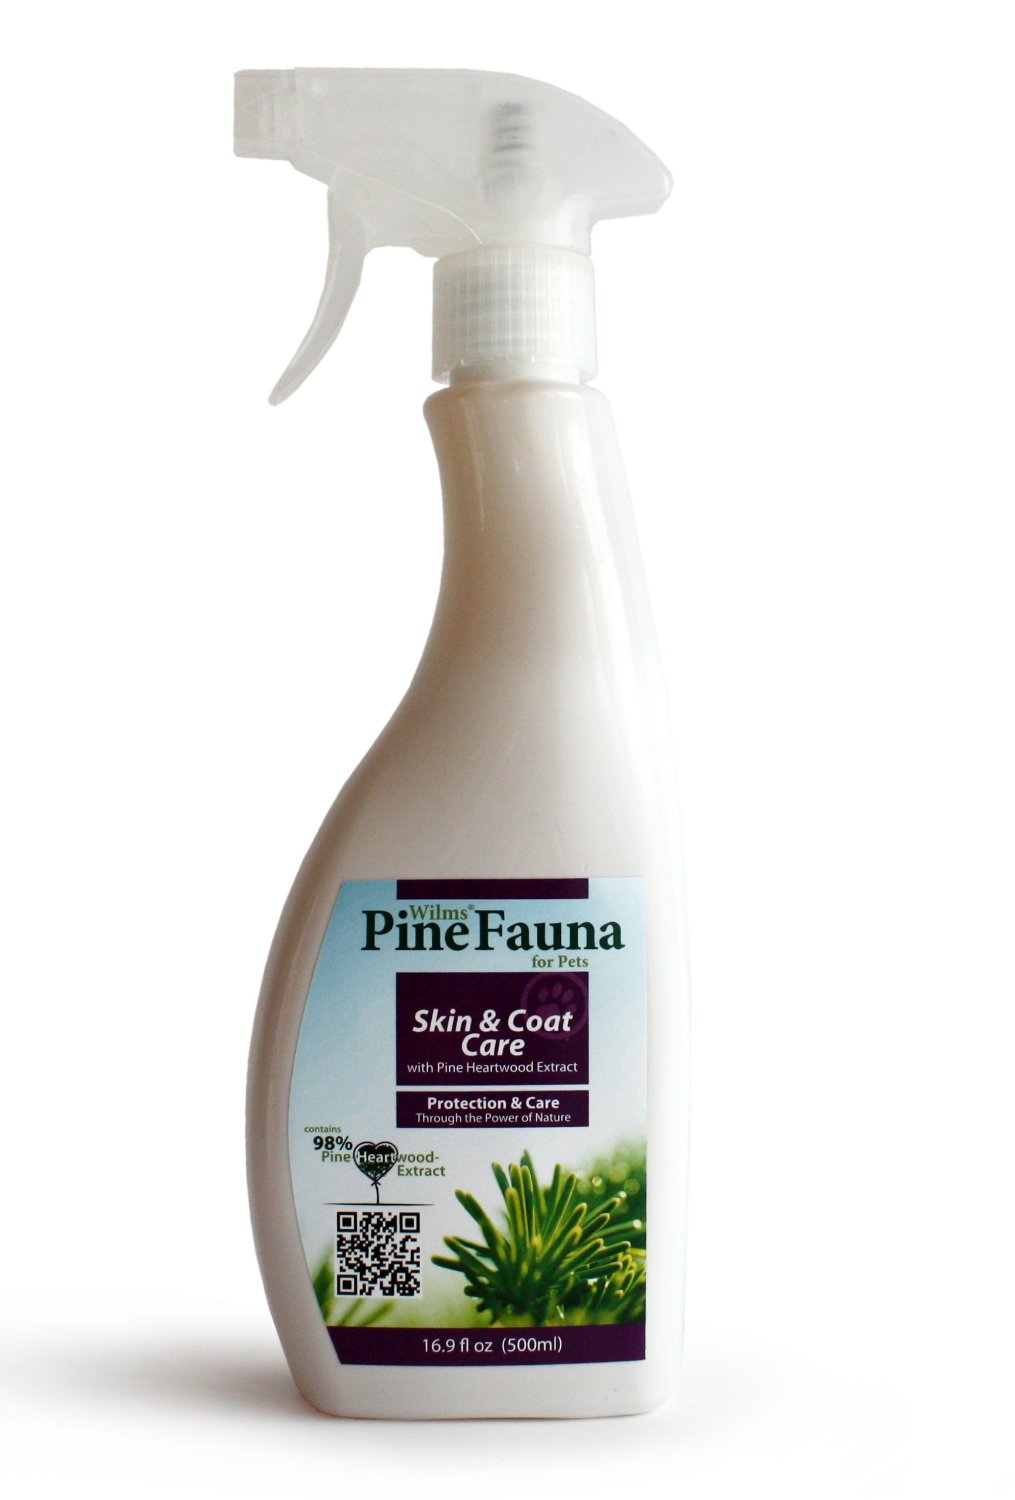 PineFauna Skin and Coat Care Spray for Dog